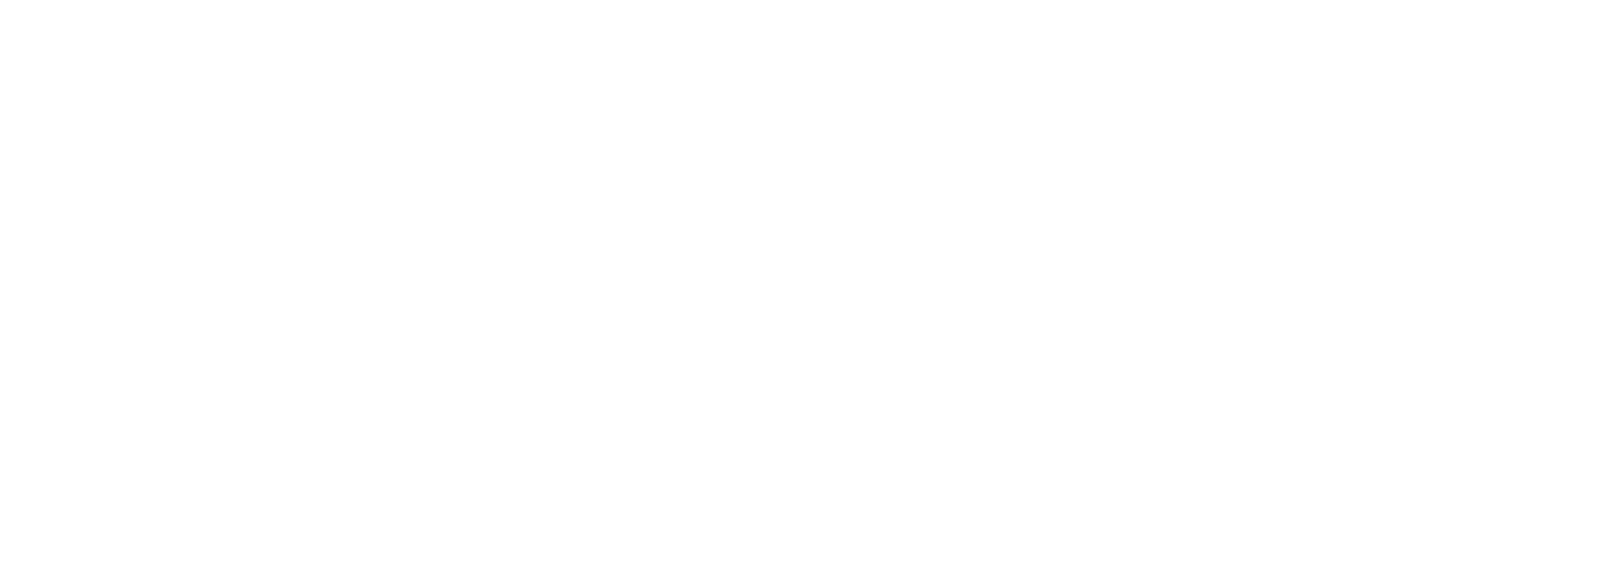 Archaeo Protect